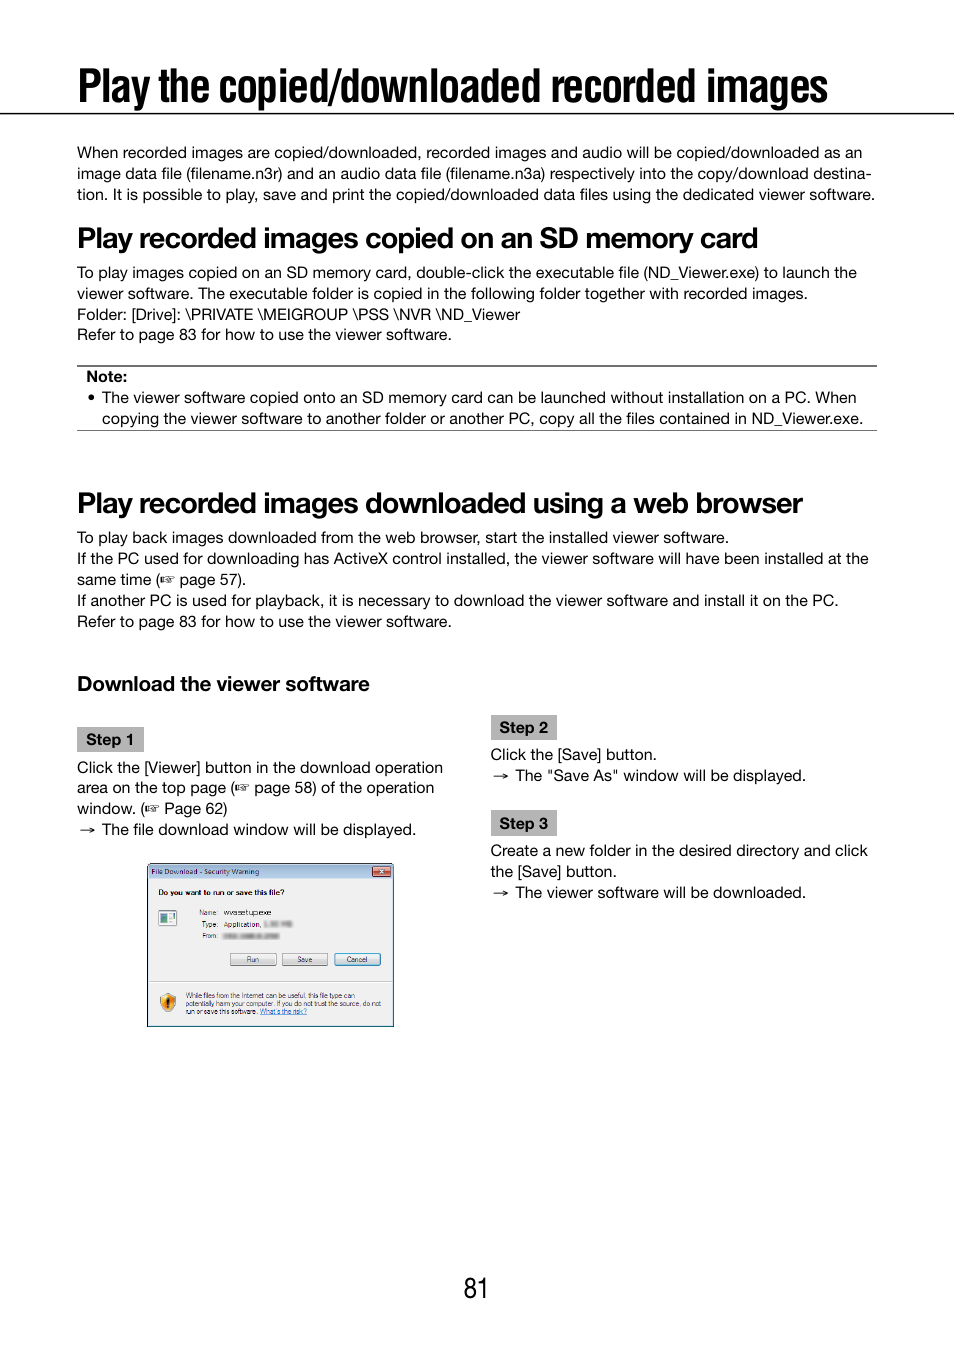 Play the copied/downloaded recorded images, Play recorded images